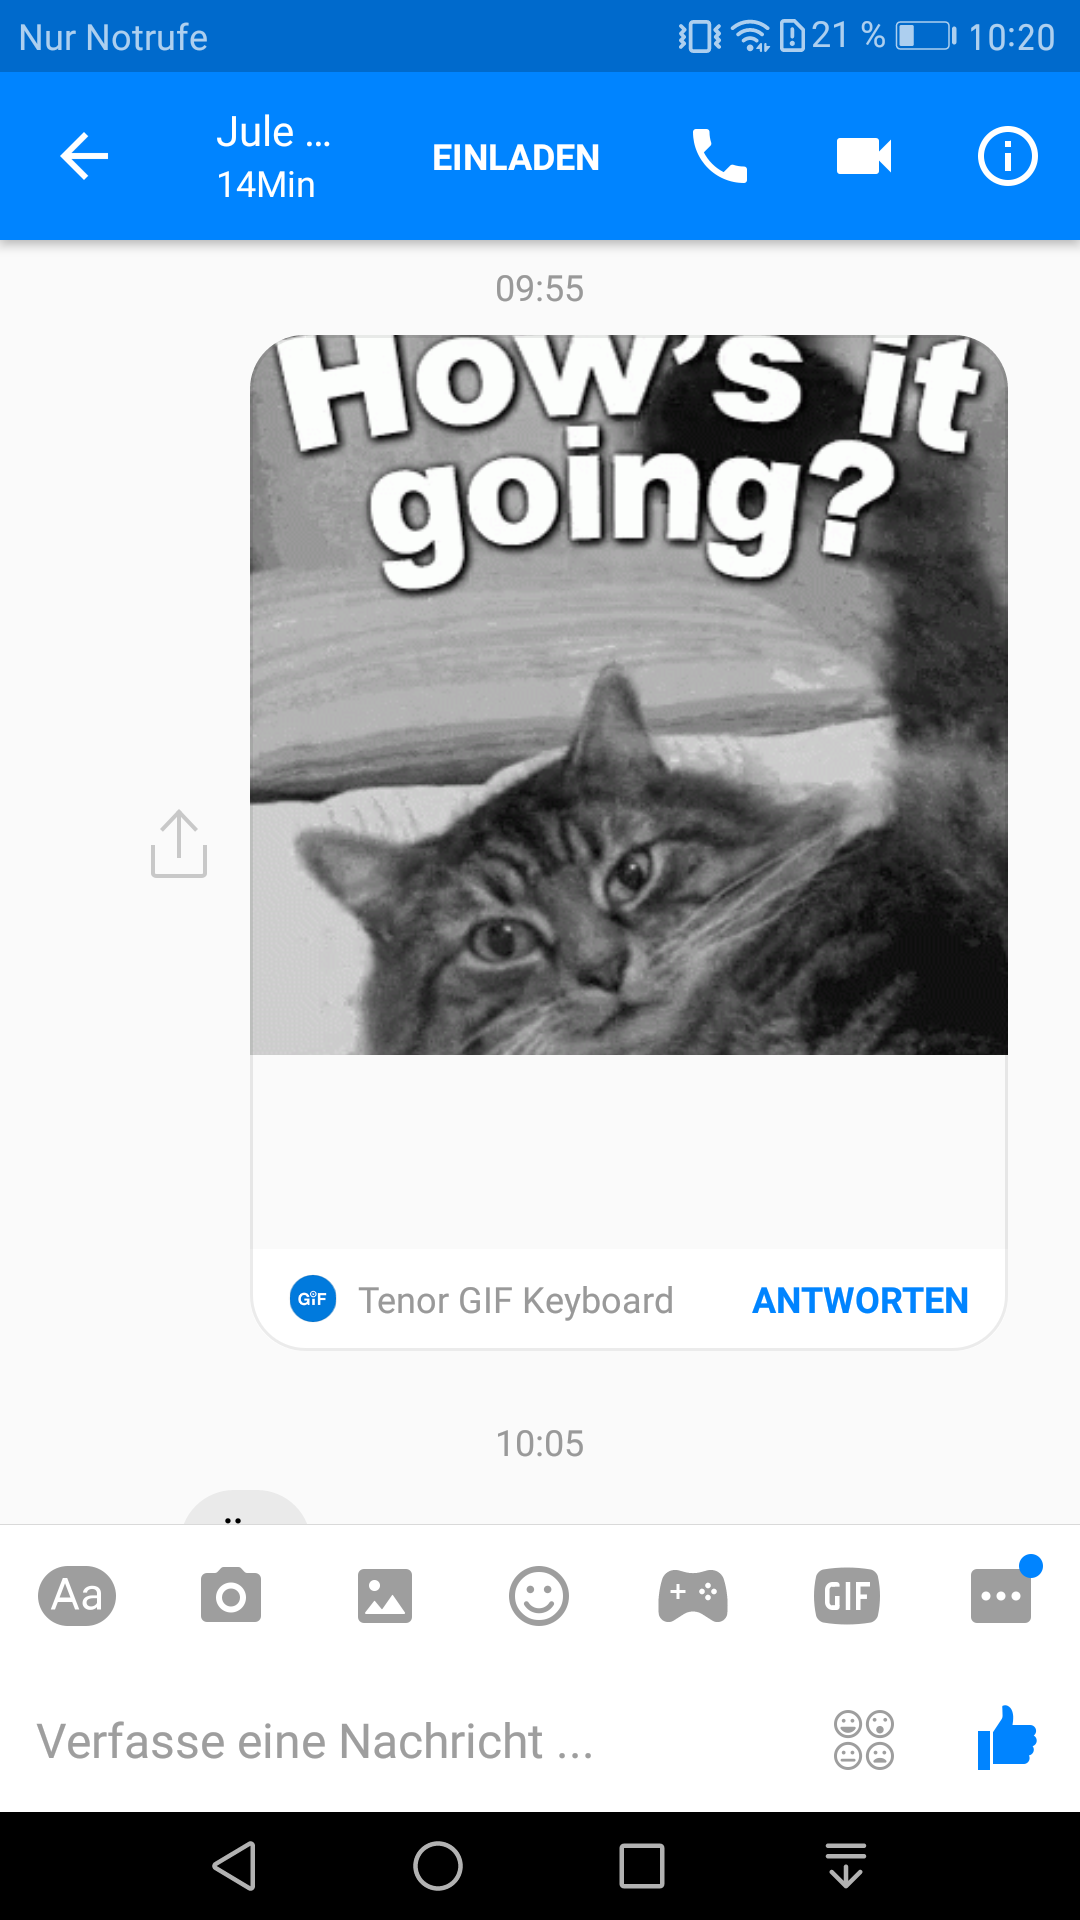 Facebook Messenger (Screenshot by Berti Kolbow-Lehradt)